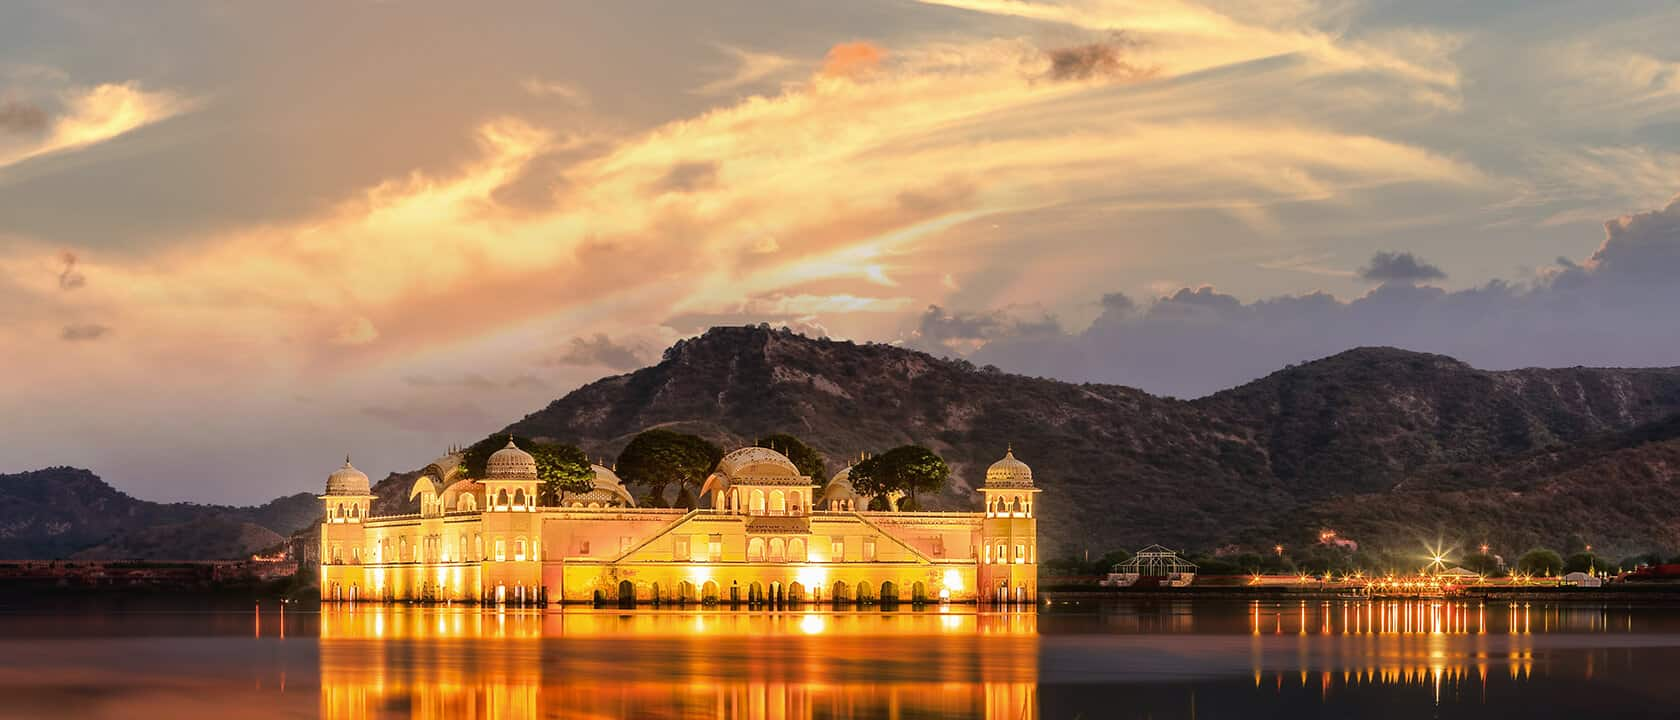 Best Instagrammable Places In Jaipur - Jal Mahal Palace